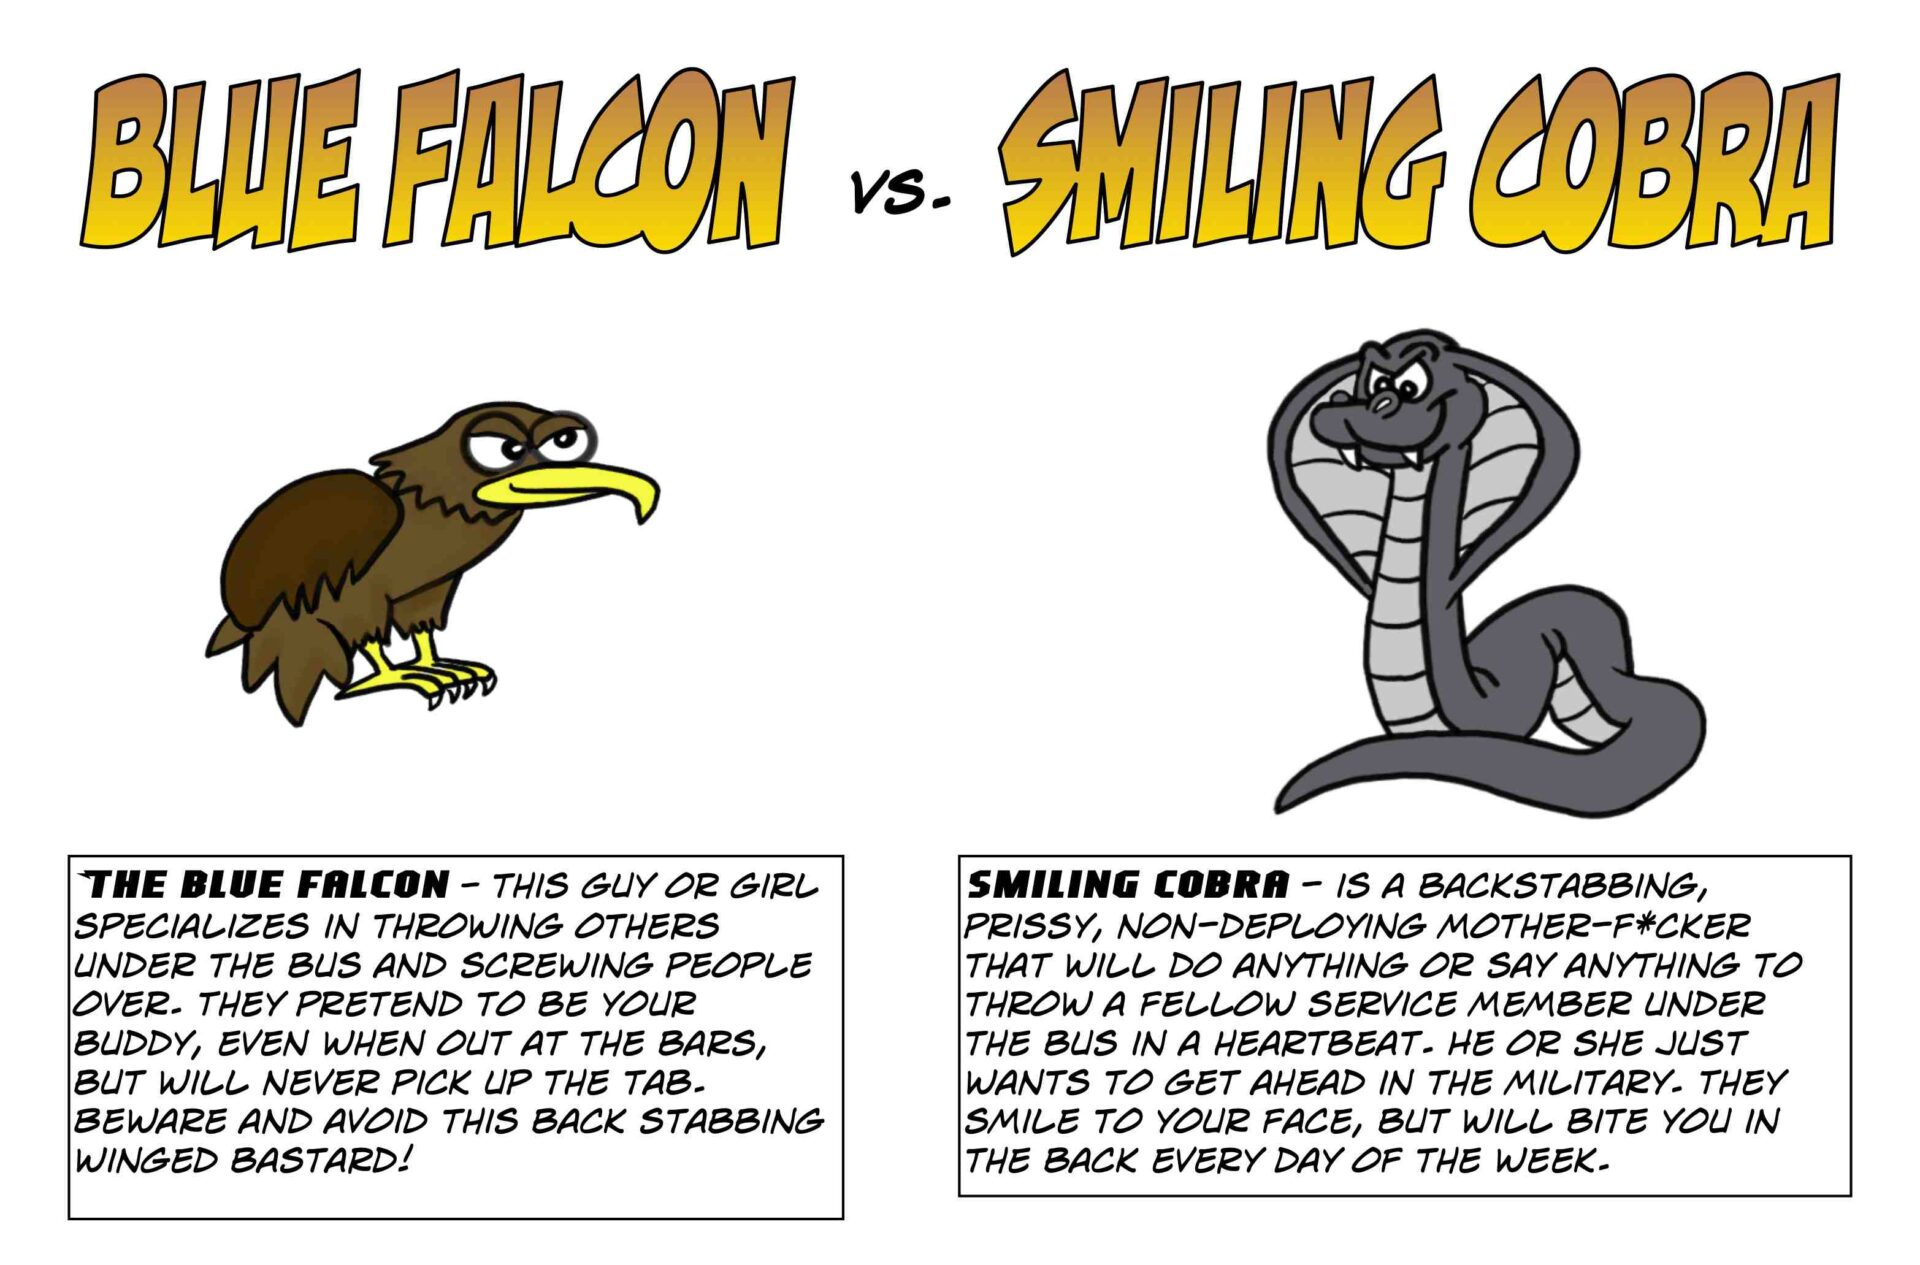 A blue falcon or smiling cobra is not wanted in the military.